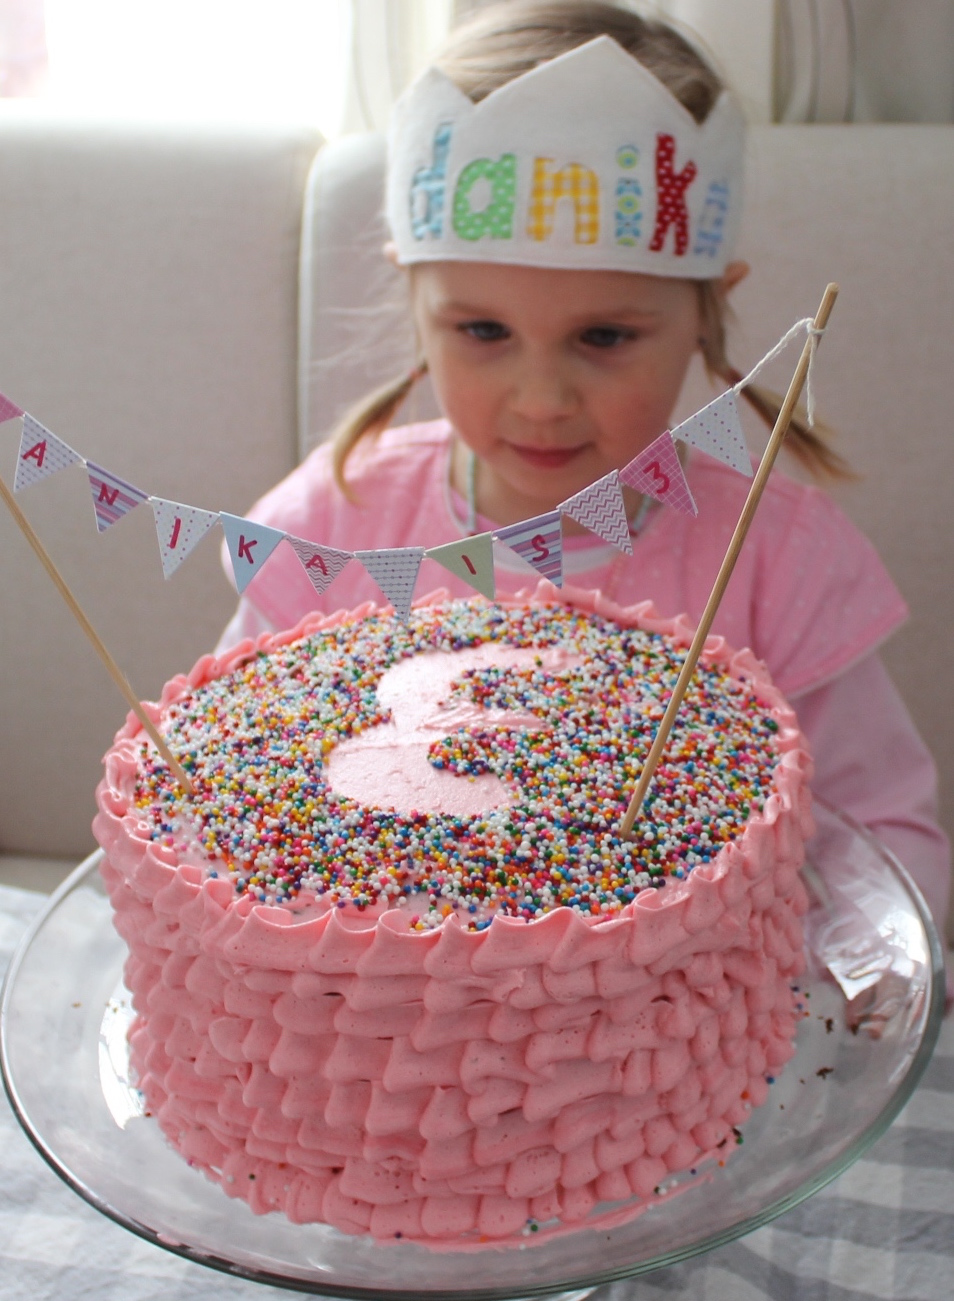 Pink ruffle cake for Danika's 3rd birthday